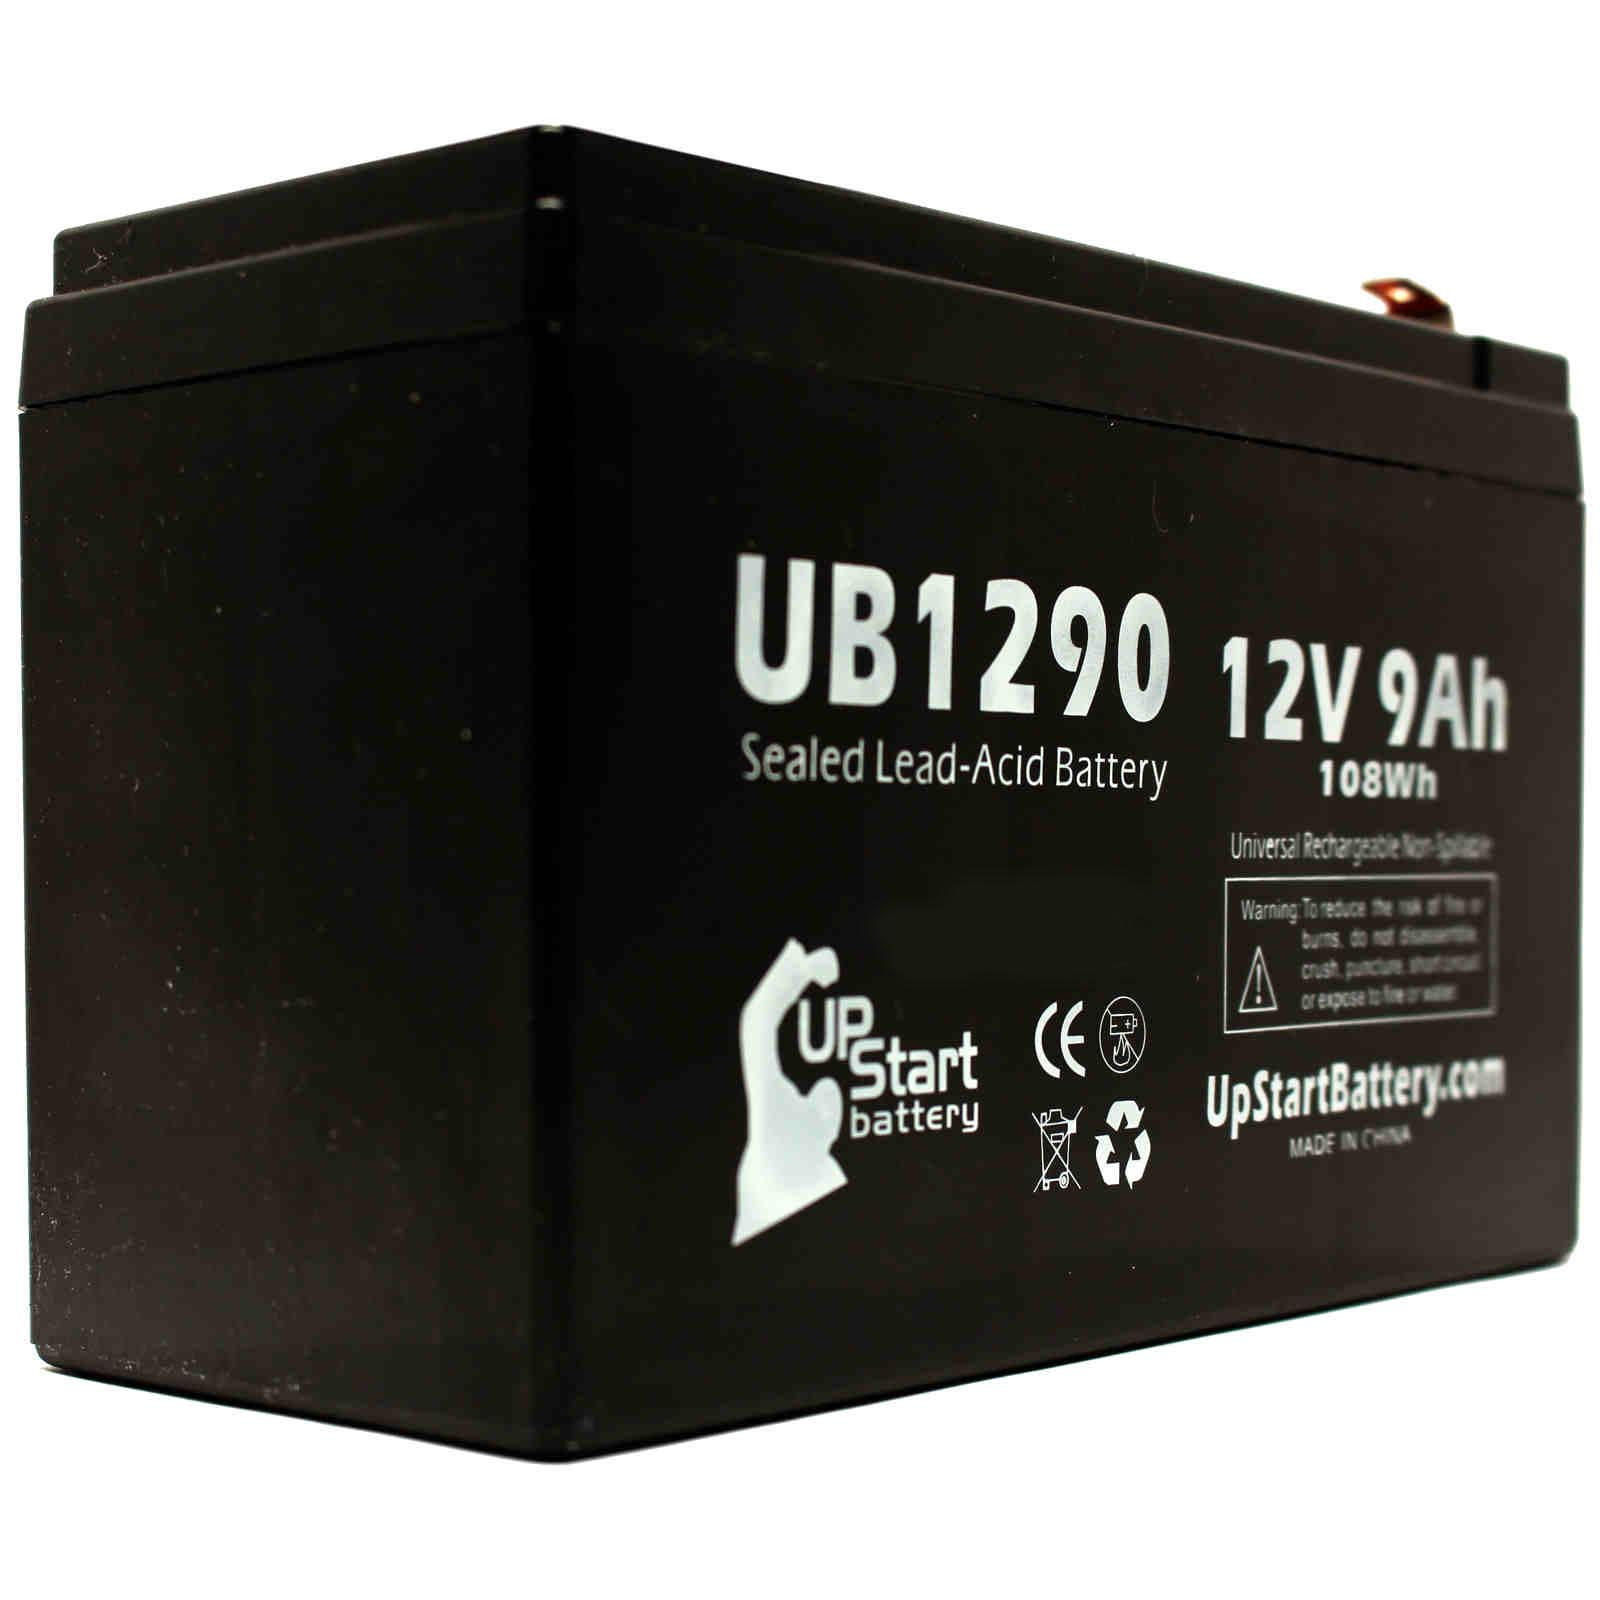 2x Pack - APC BACK-UPS PRO 420VA BP420S Battery Replacement - UB1290 Universal Sealed Lead Acid Battery (12V, 9Ah, 9000mAh, F1 Terminal, AGM, SLA) - Includes 4 F1 to F2 Terminal Adapters - image 3 de 4